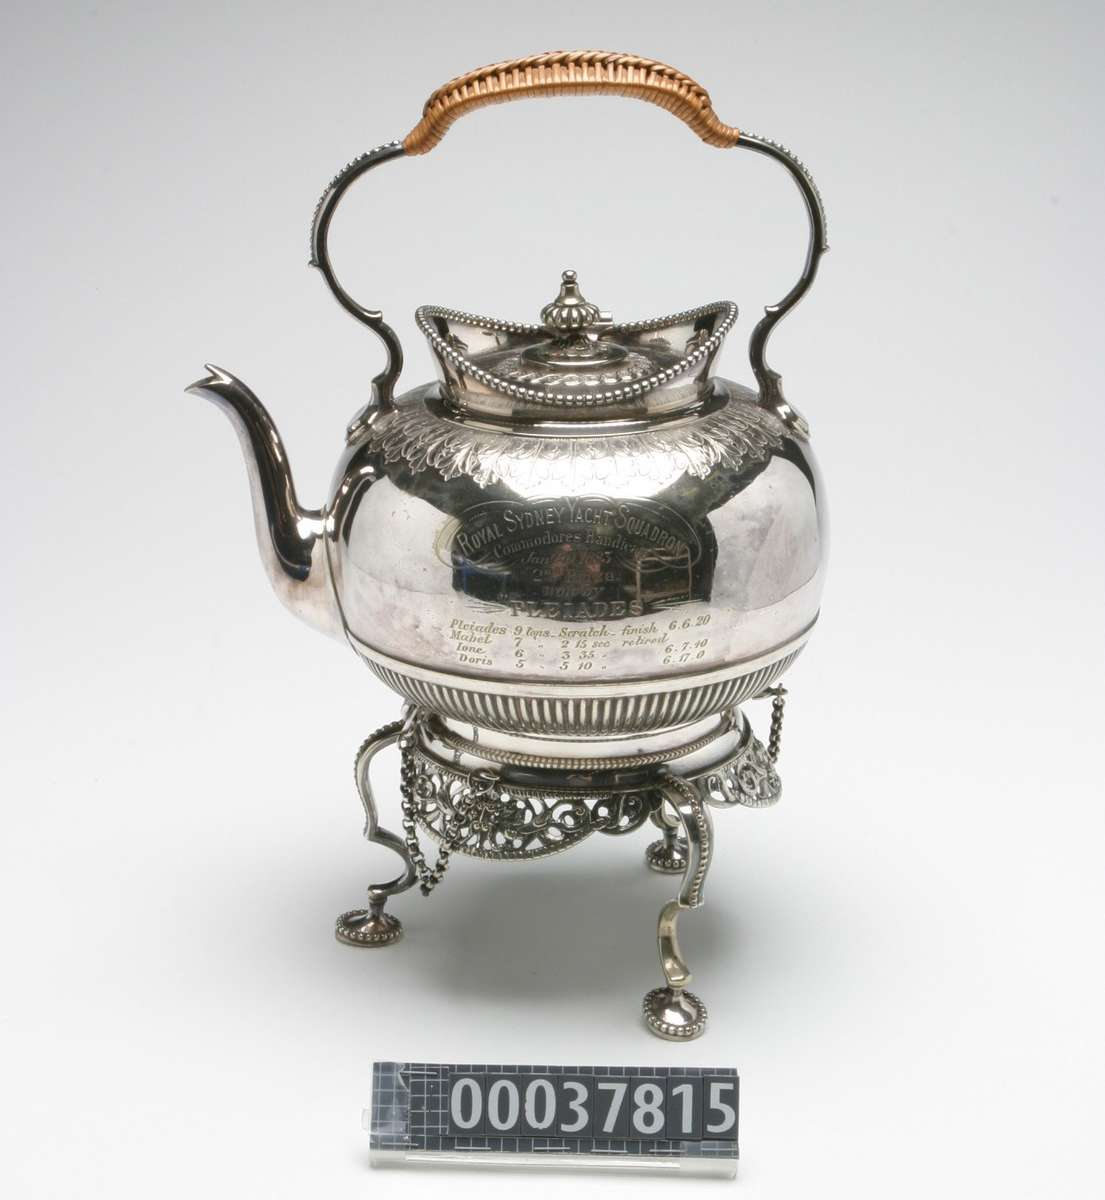 Late-19th-century trophy.